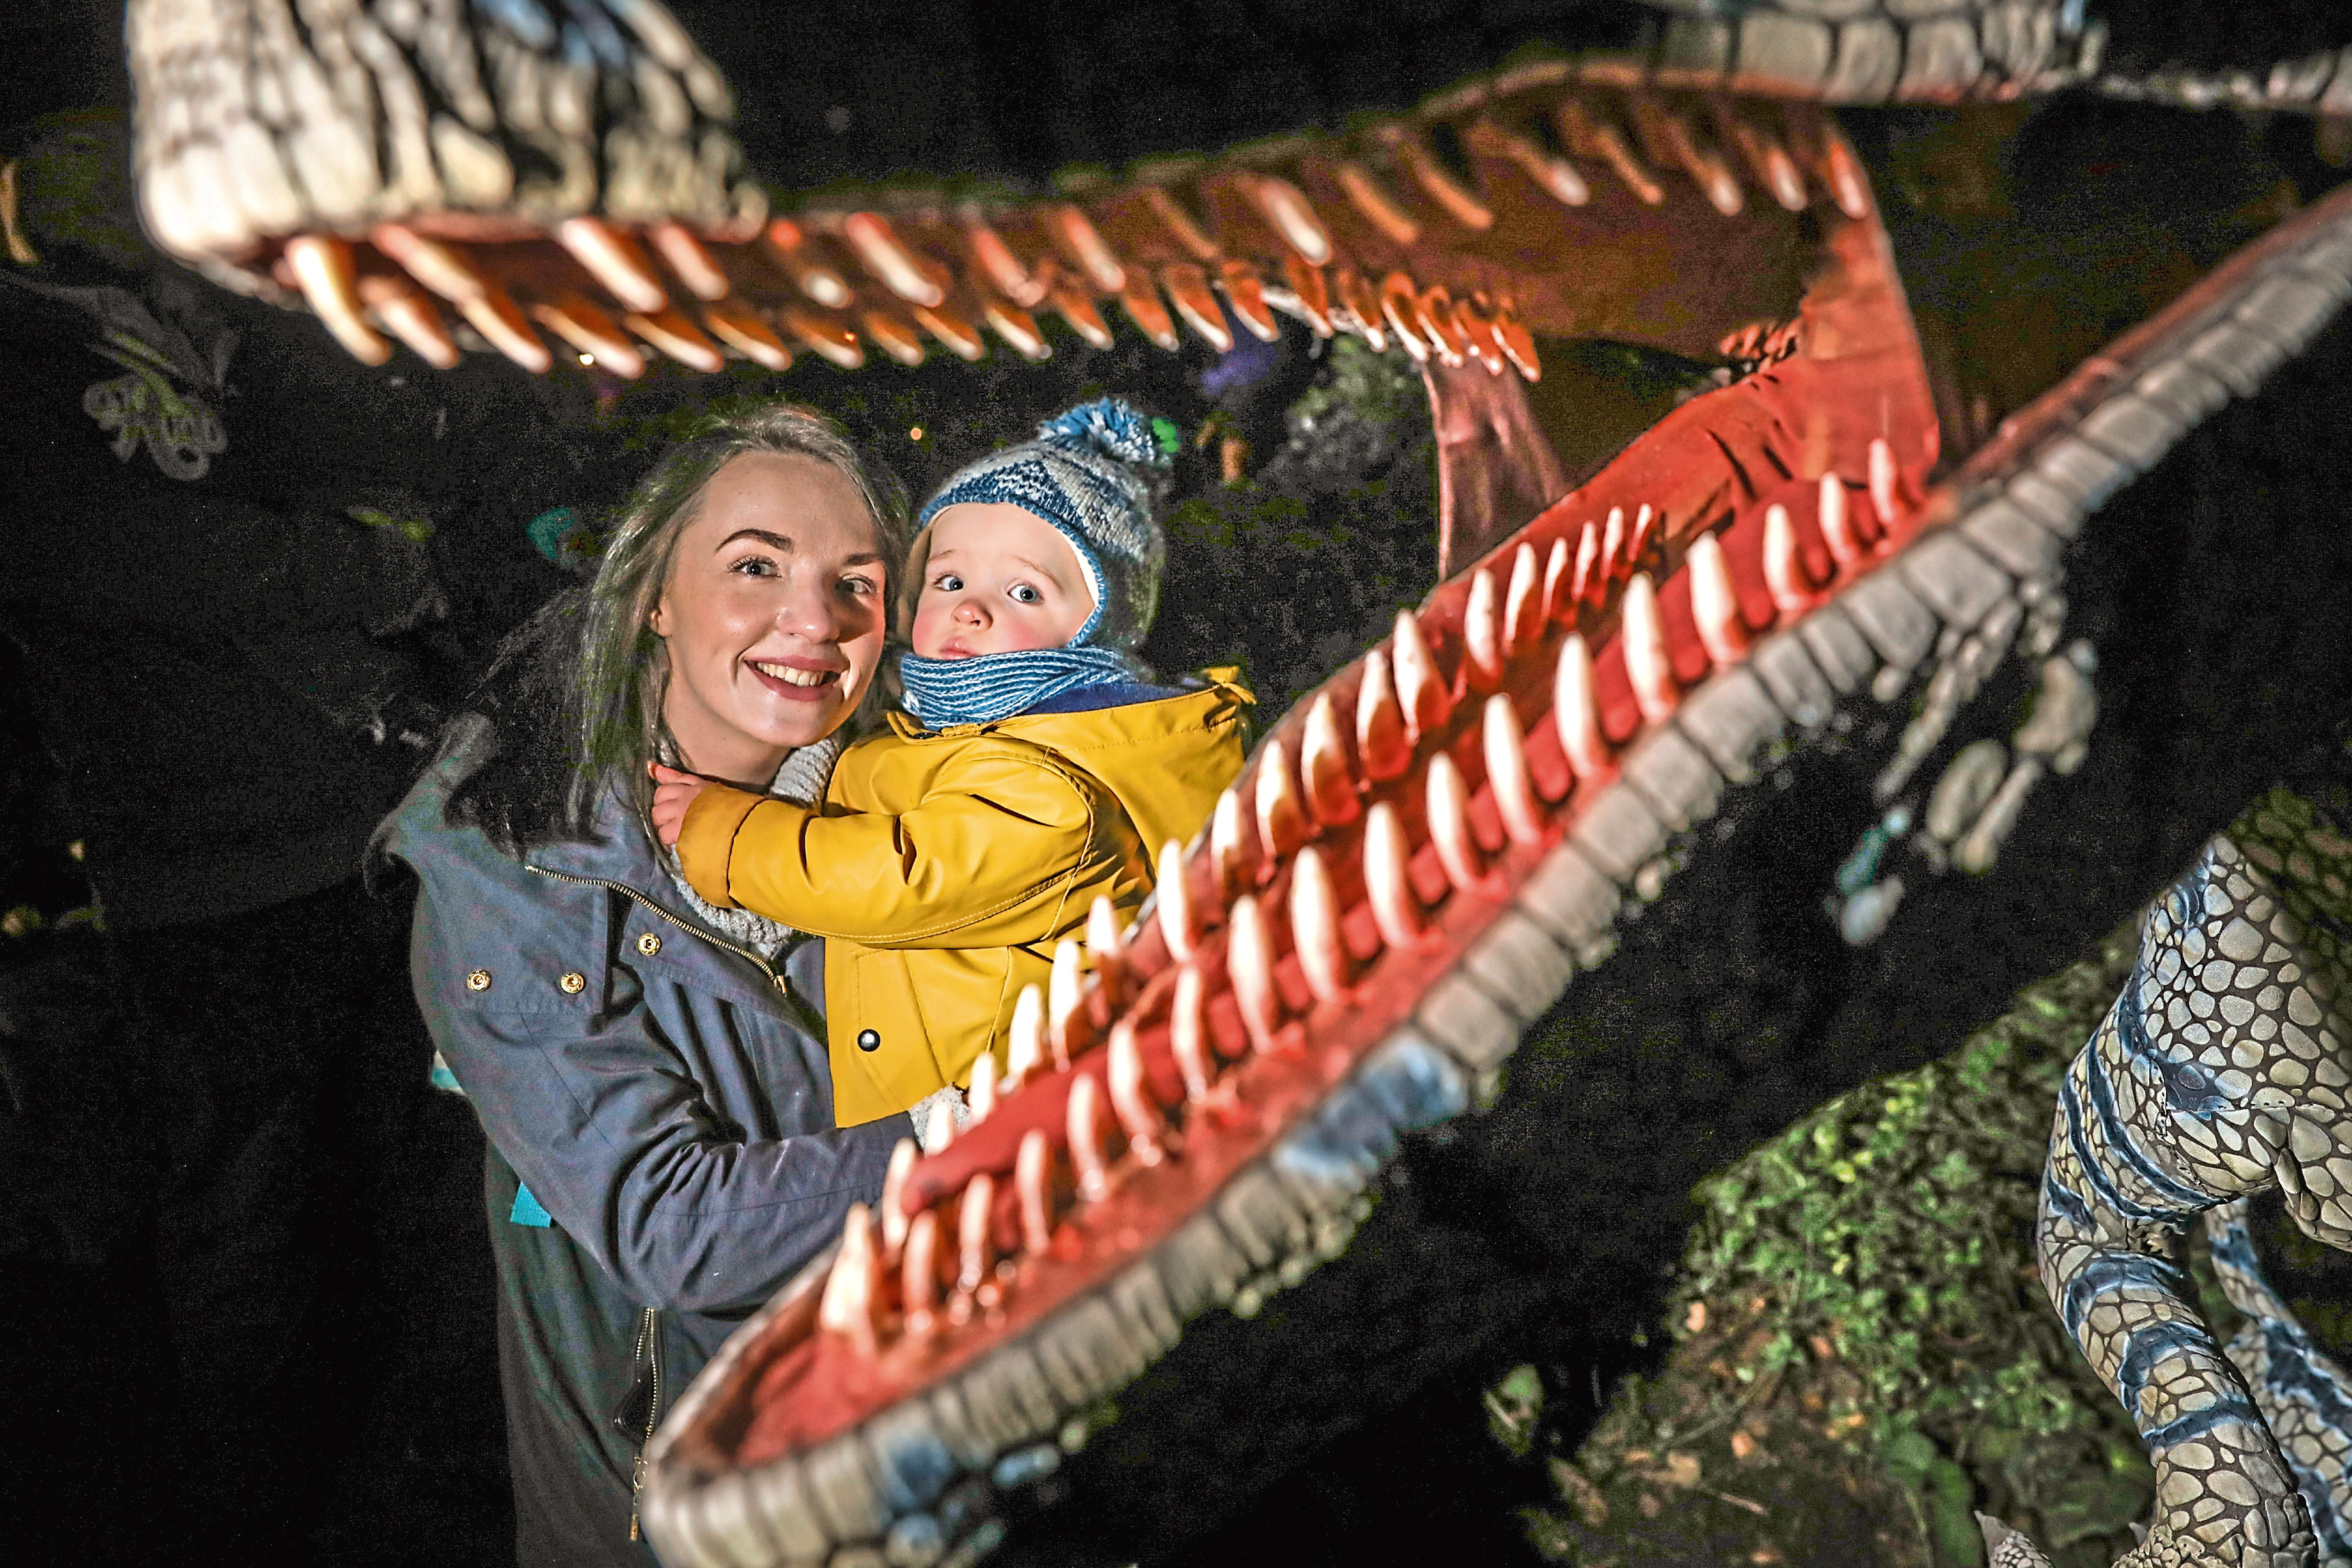 Shannon Huntley and her 18-month-old son Myles McDougall at the dinosaur night